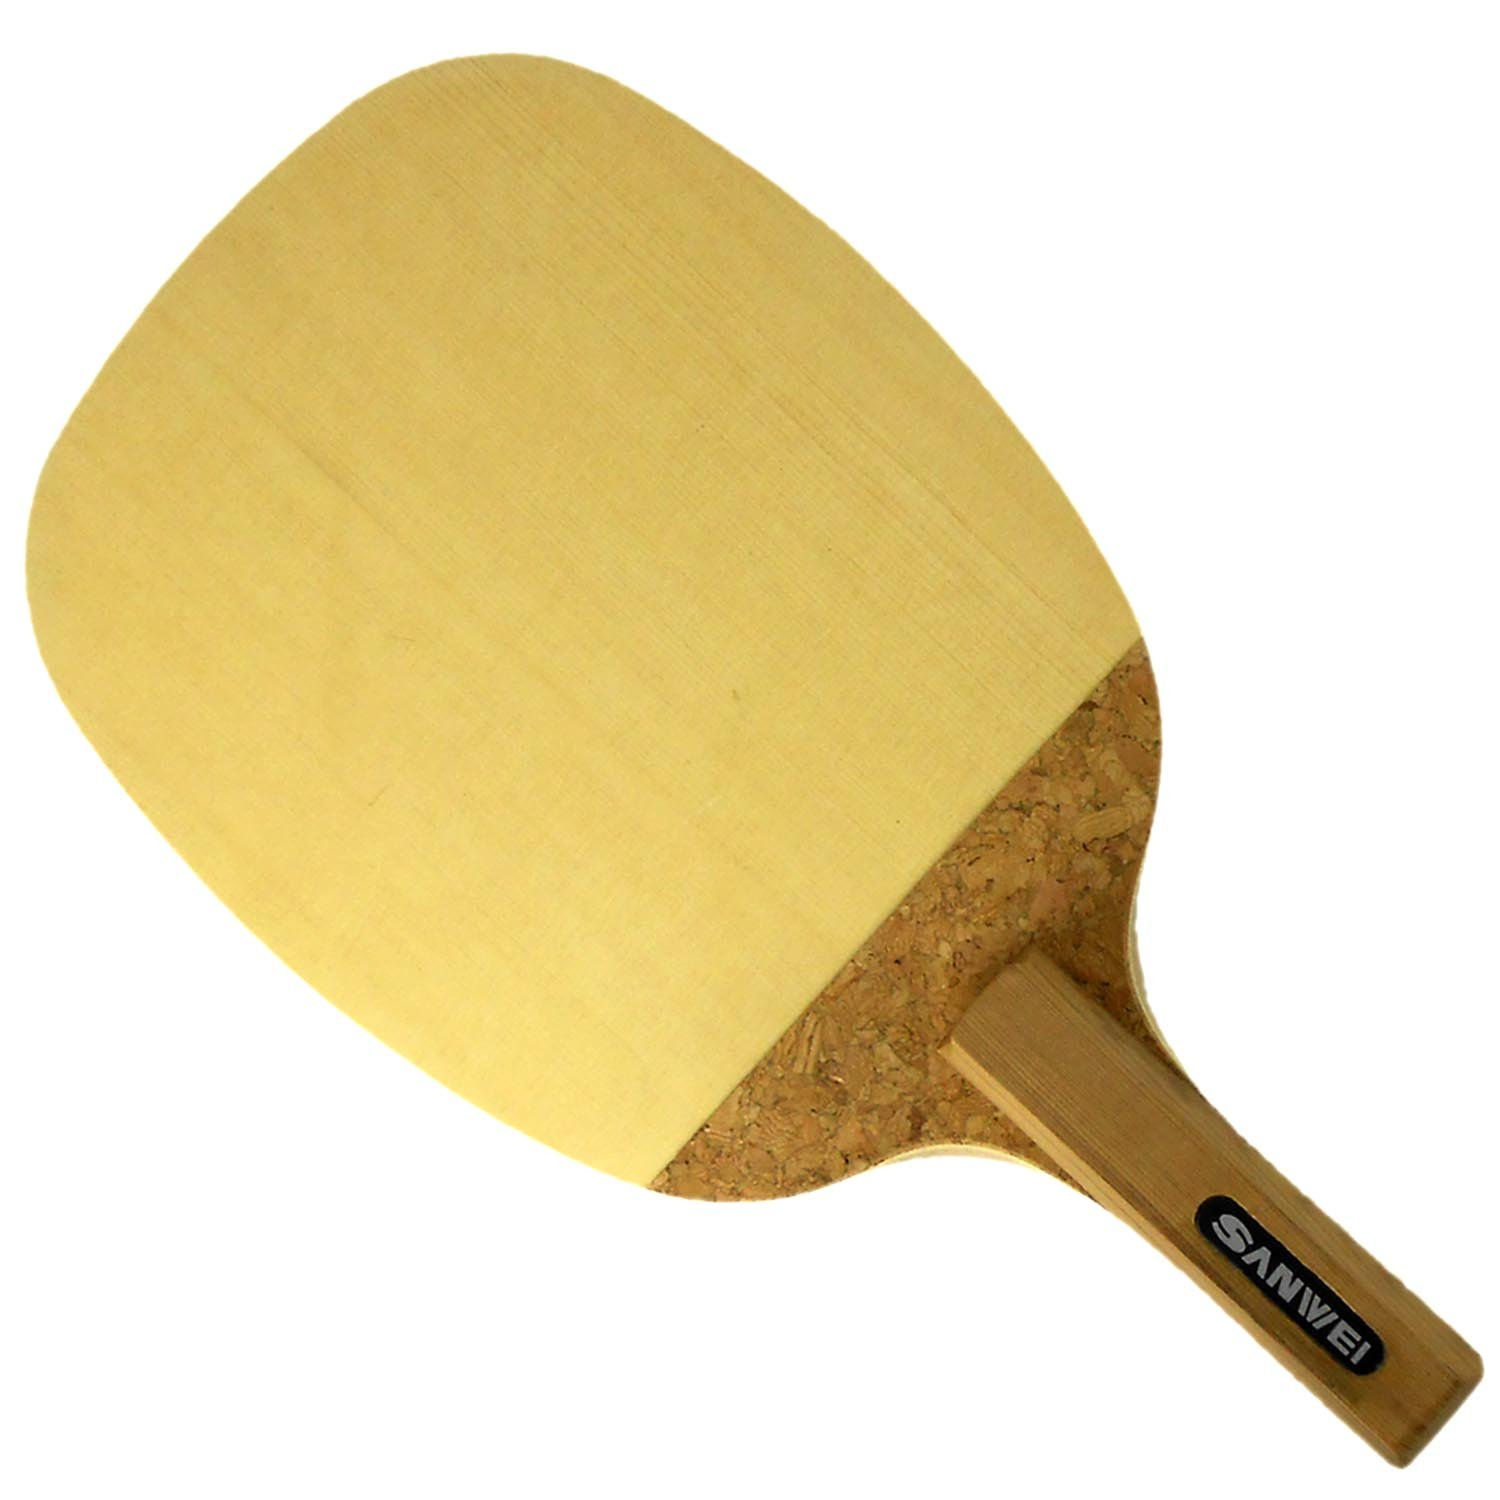 Sanwei r1 Japanese Penhold JS Table Tennisブレード B00ORKMZA2